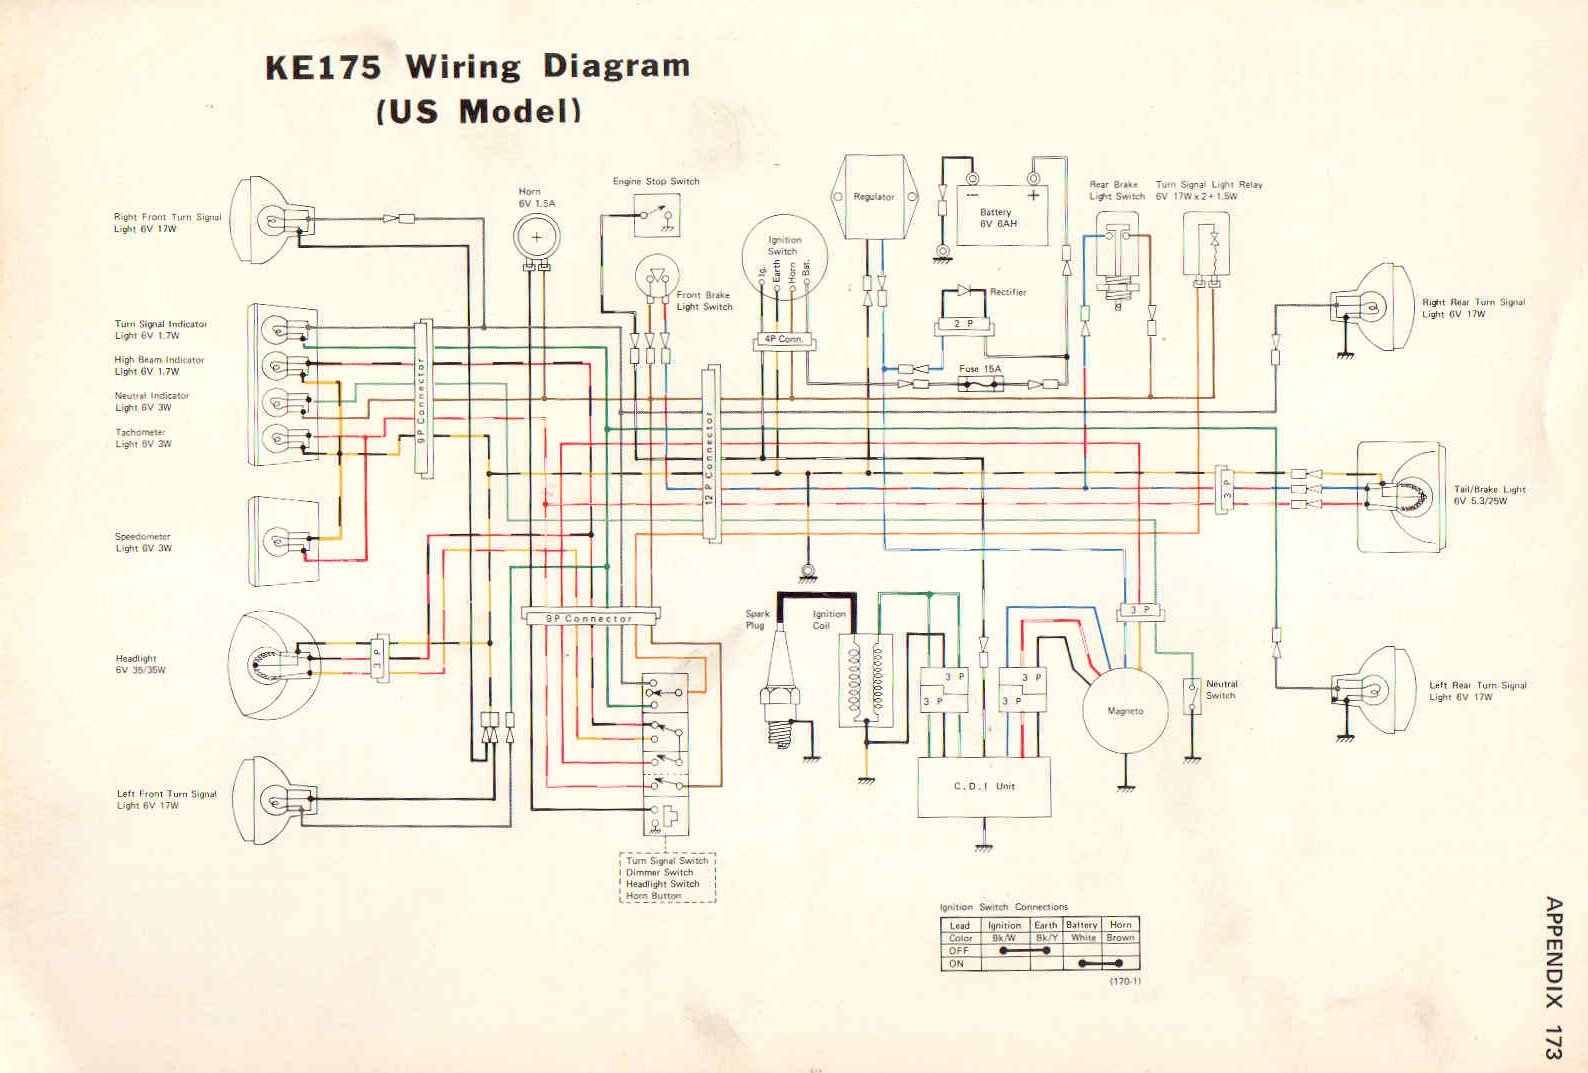 Ke175 Wiring Diagram Ask Answer Malaysia Rules Free Download Diagrams Pictures Kawasaki Motorcycle Get Image About 1980 Ke 175 1977